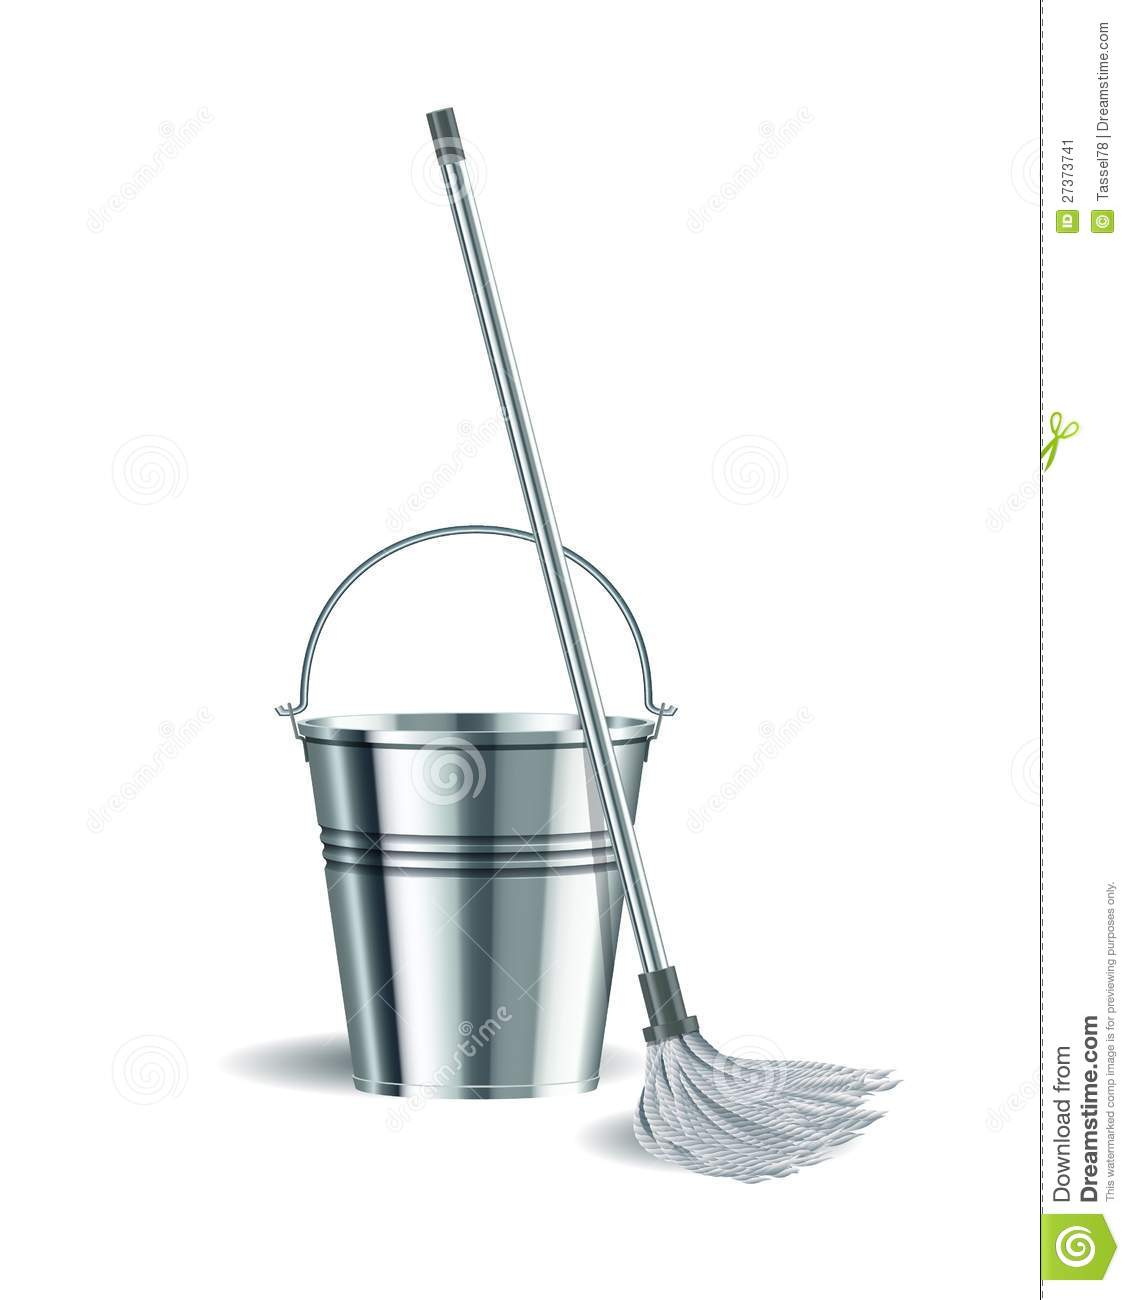 Bucket And Mop On White Background. Stock Image - Image: 27373741